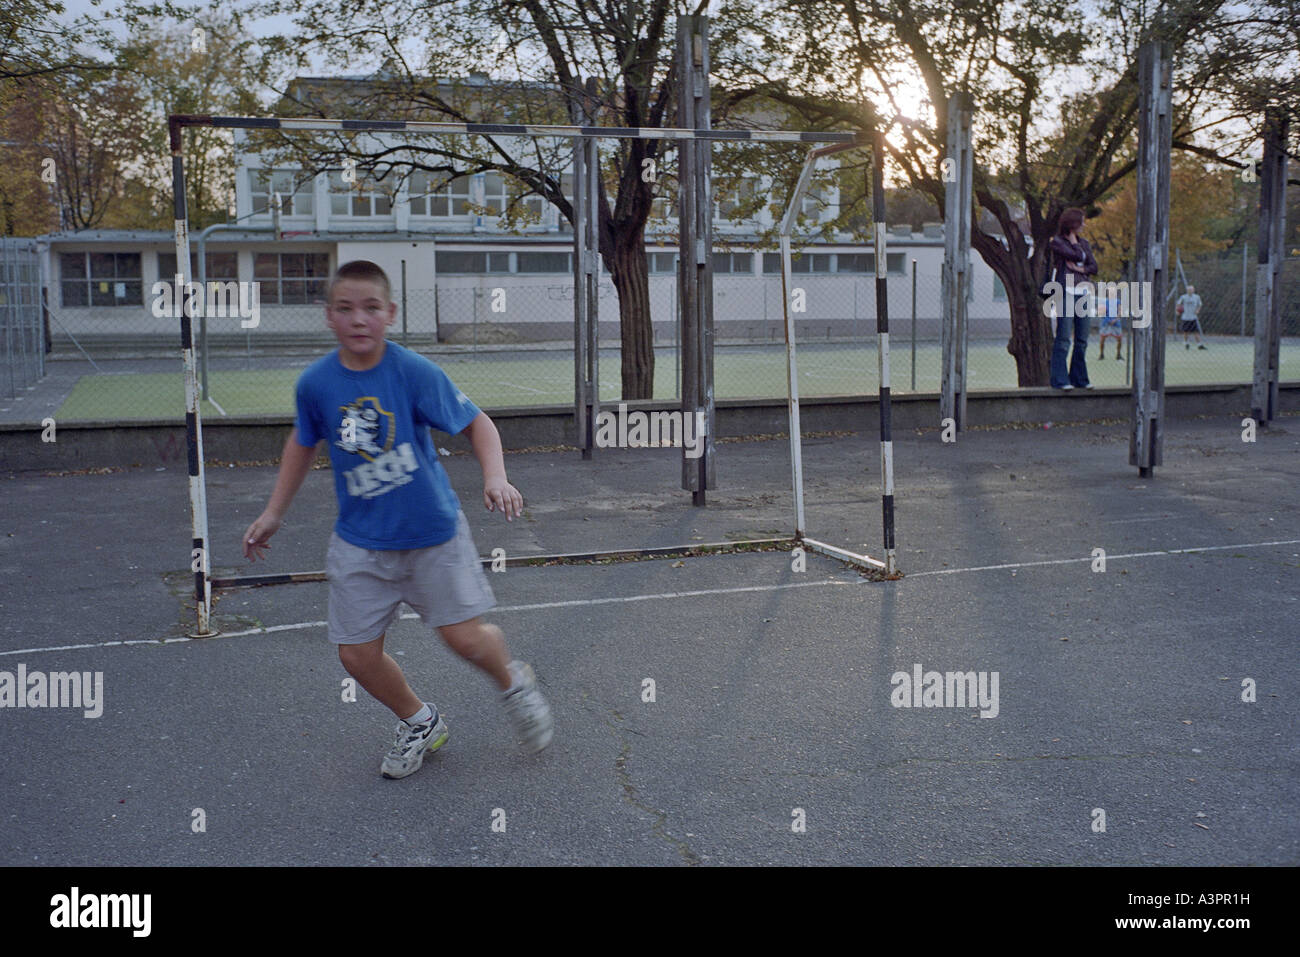 Young amateur goalkeeper, Poznan, Poland. - Stock Image